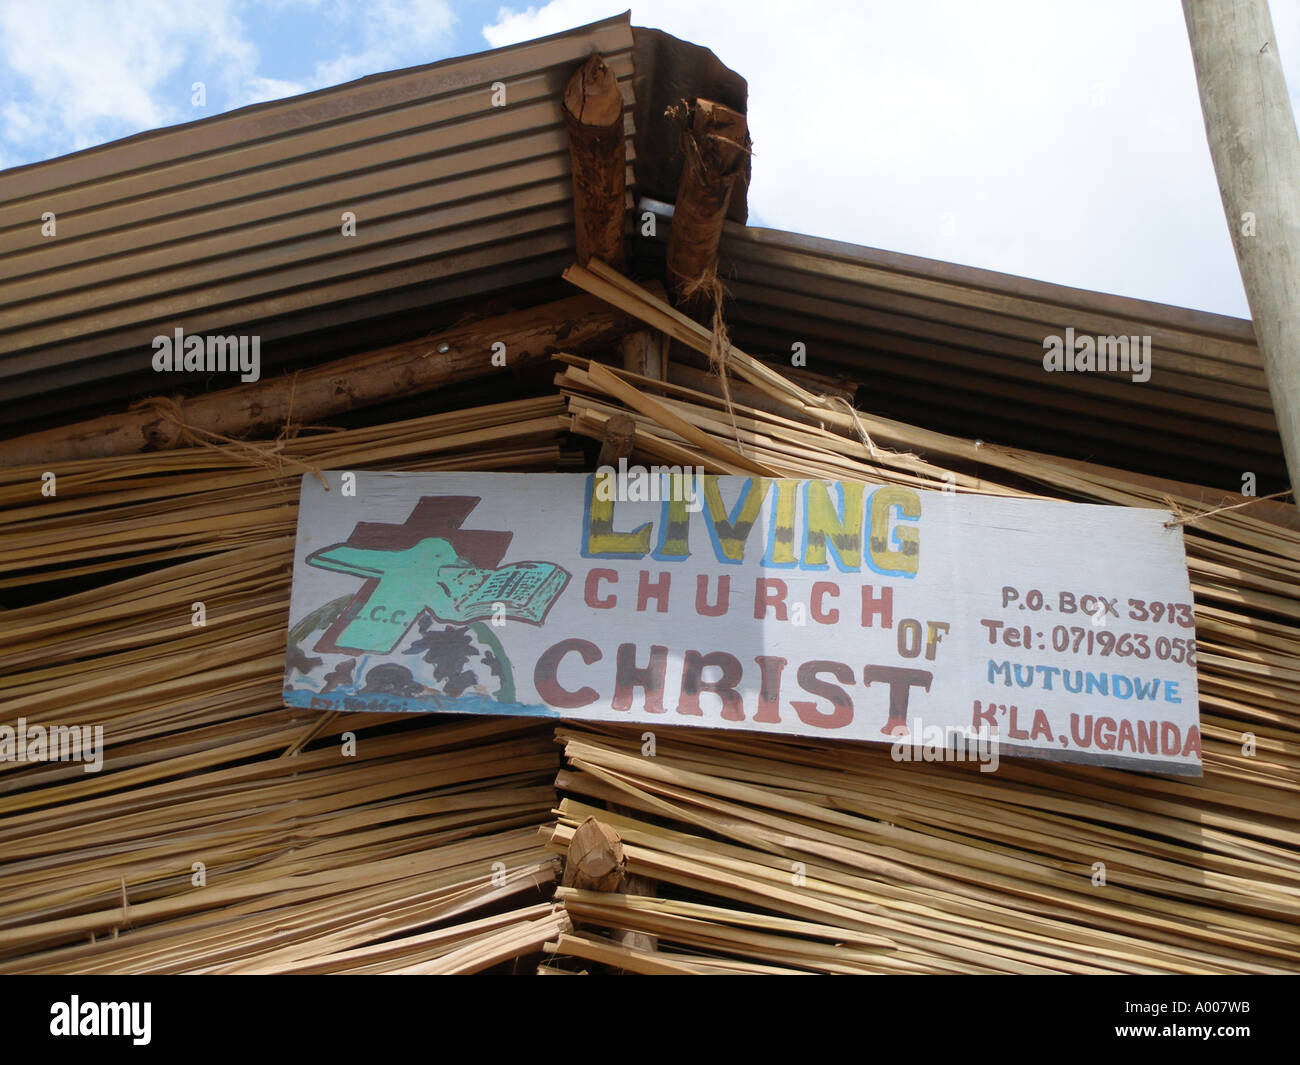 Living Church of Christ, Pentecostal church in Kampala suburb, Uganda - Stock Image